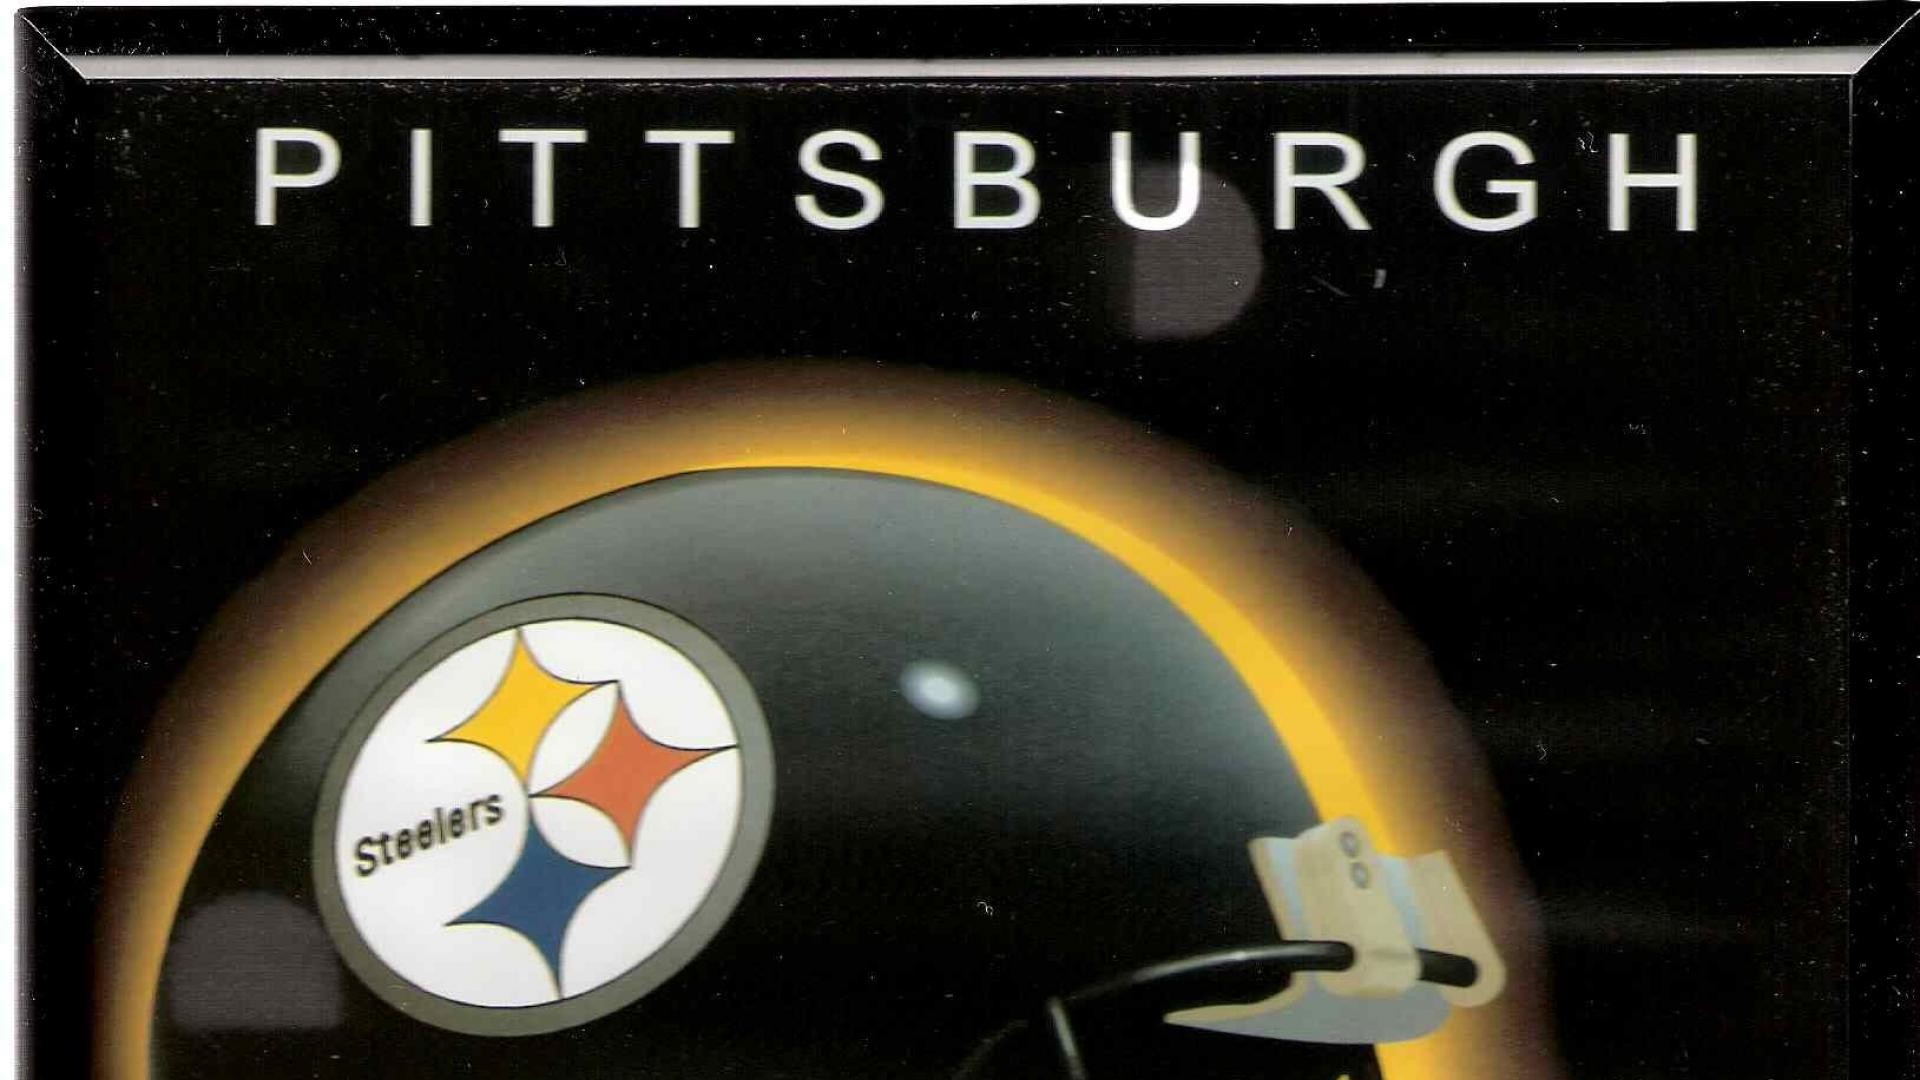 Pittsburgh Steelers Wallpaper Download Free Full Hd